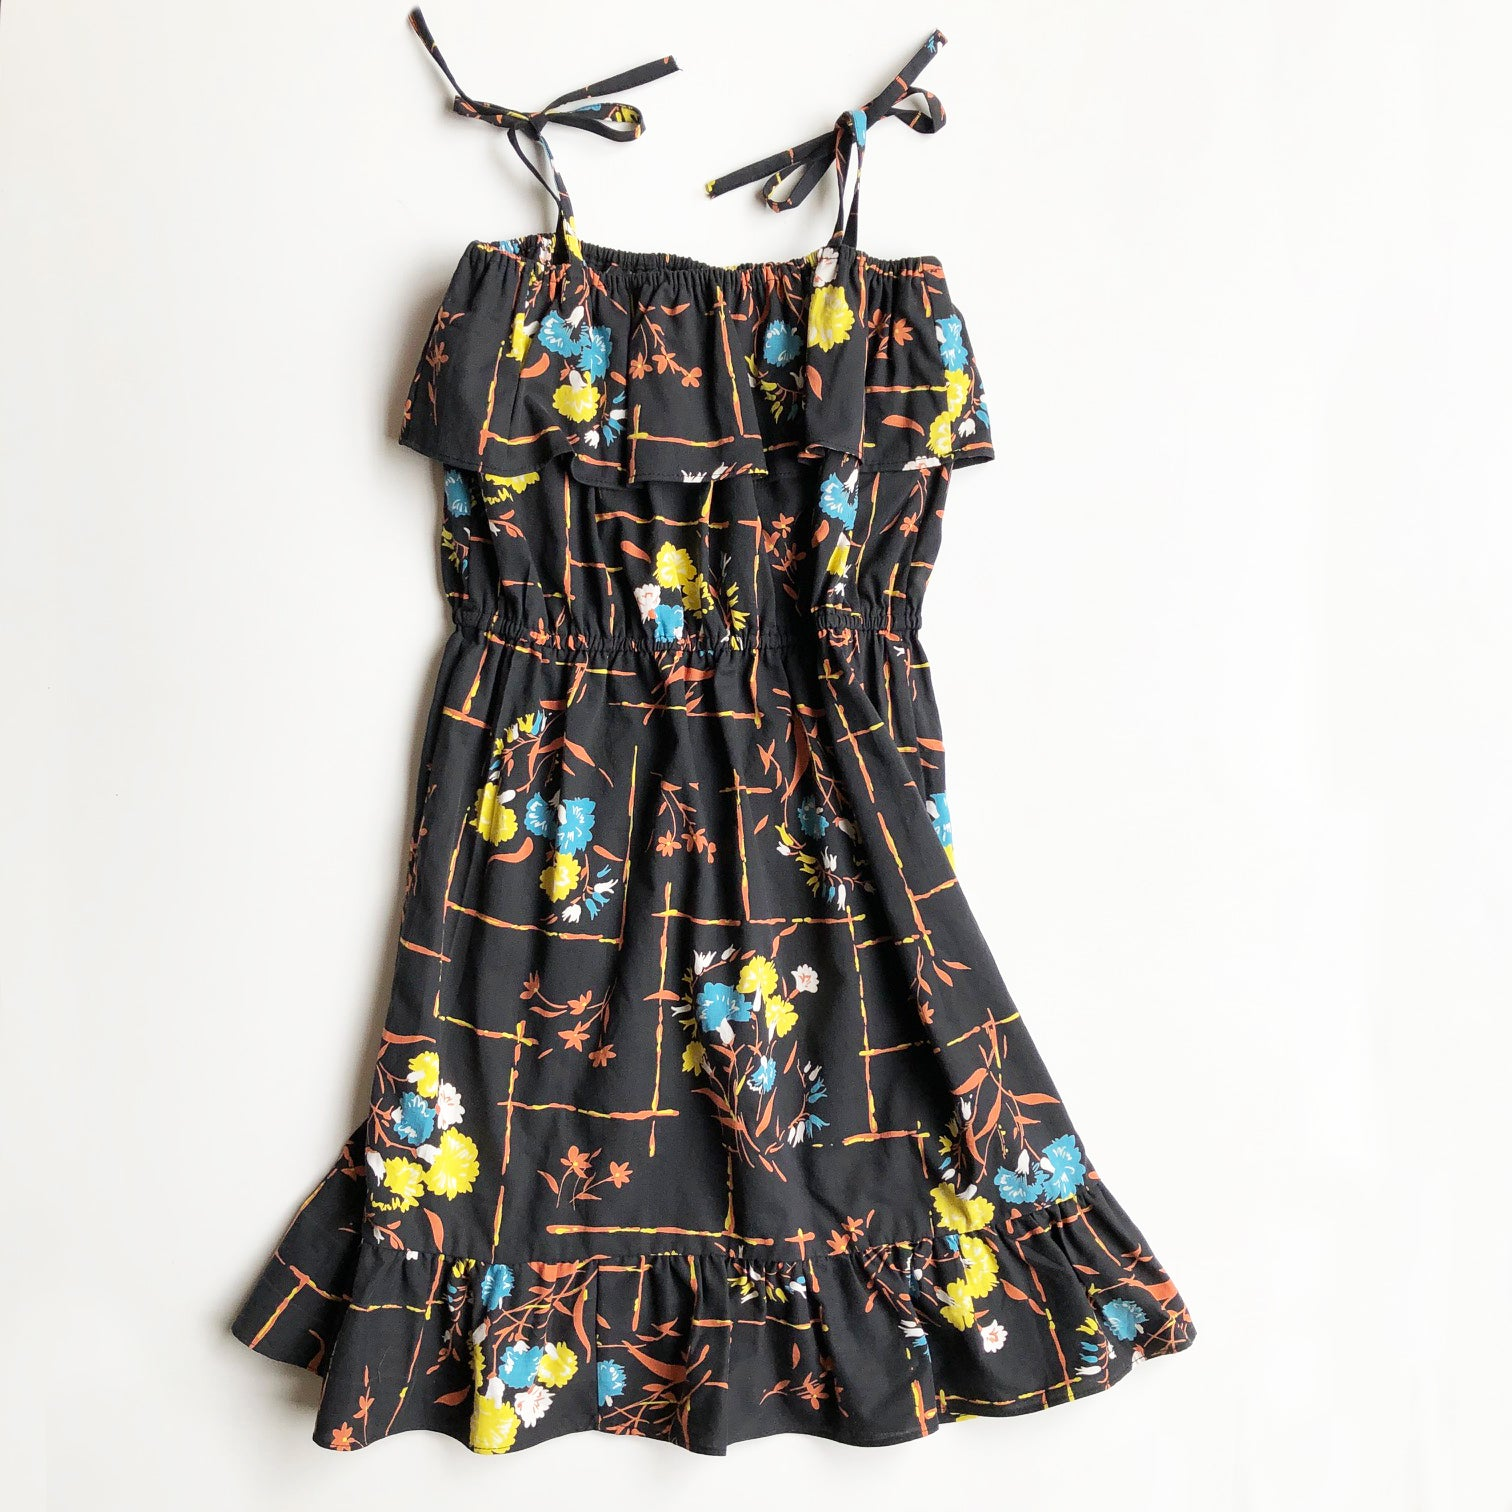 Chloe Re-purposed Dress in Black 40's print size 8